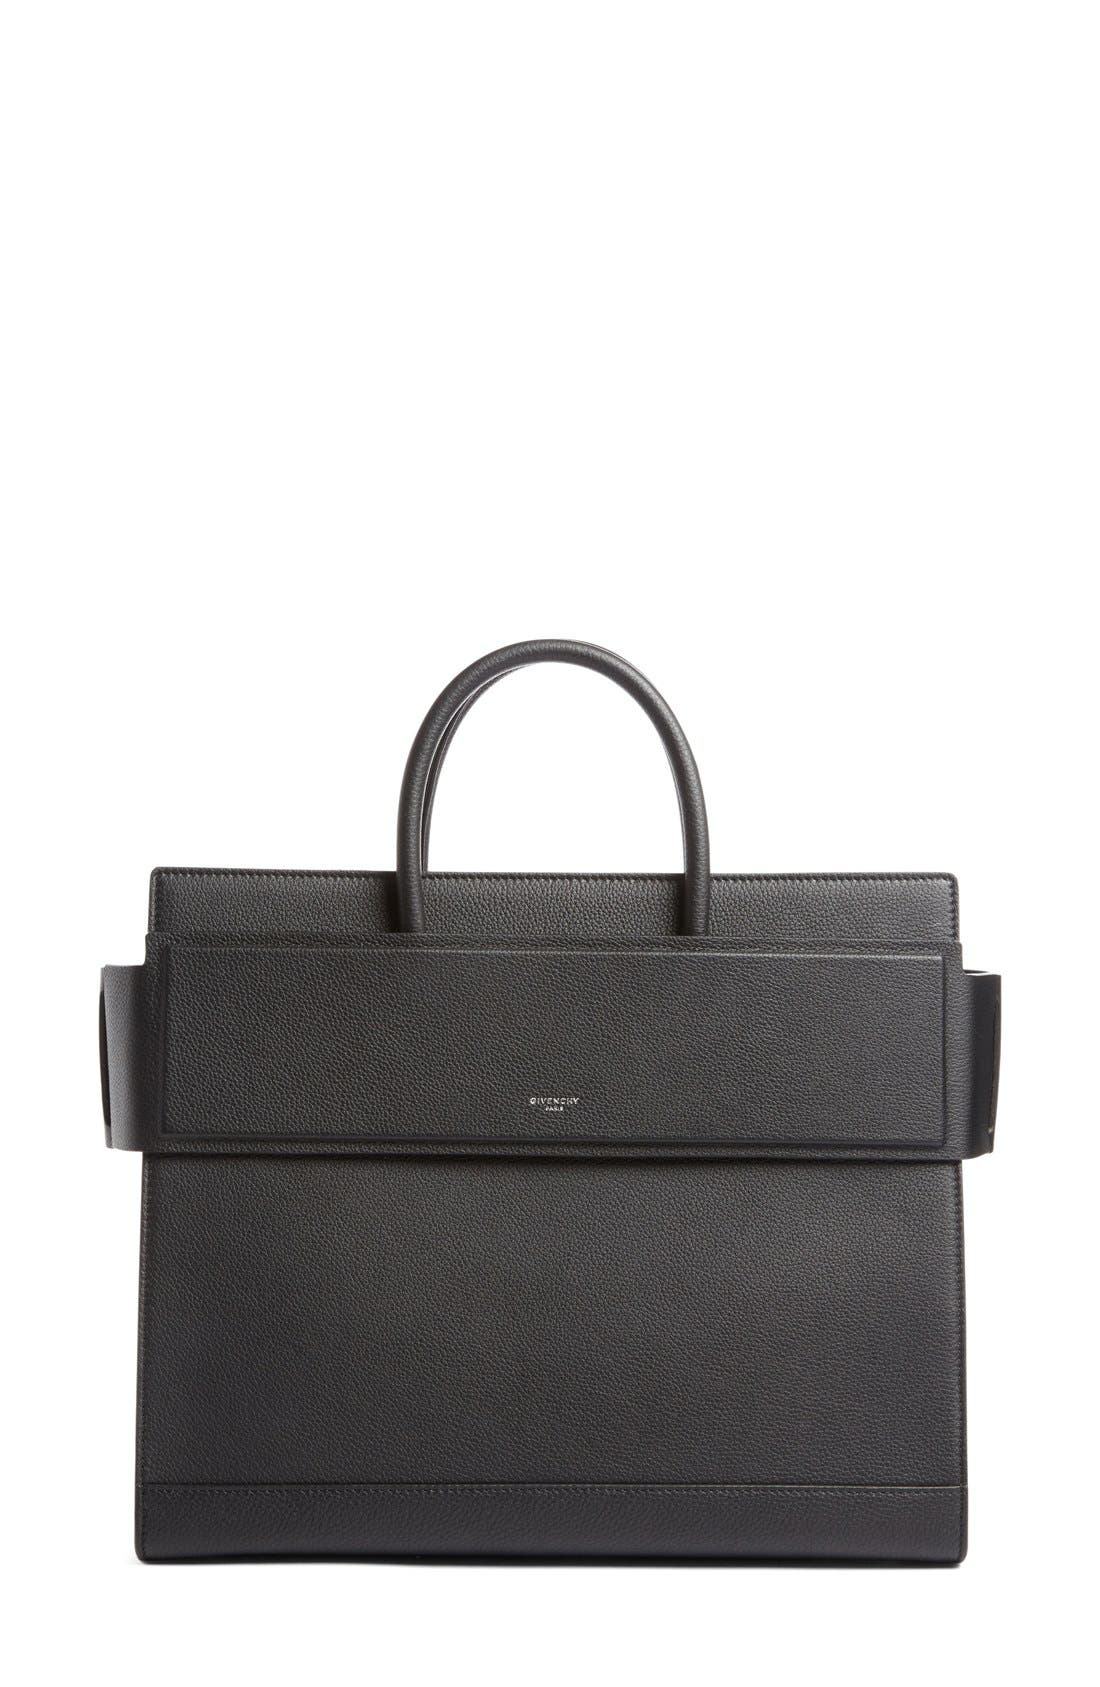 Alternate Image 1 Selected - Givenchy Medium Horizon Grained Calfskin Leather Tote